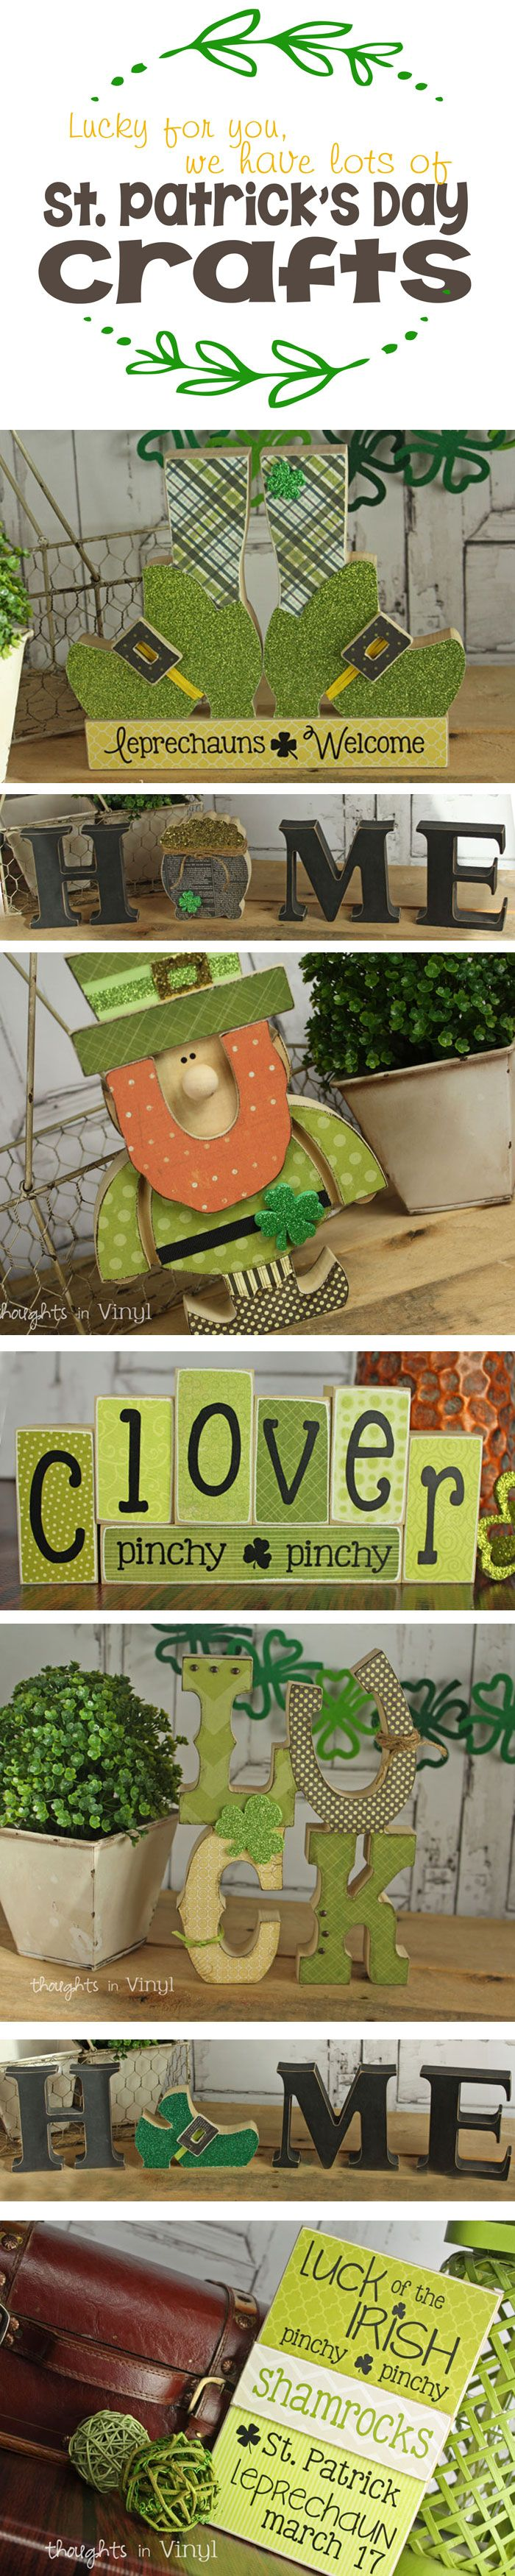 Lots of cute St. Patrick's Day crafts!  Wooden Letters and Leprechauns.  Over 30 different craft kits to pick from!!